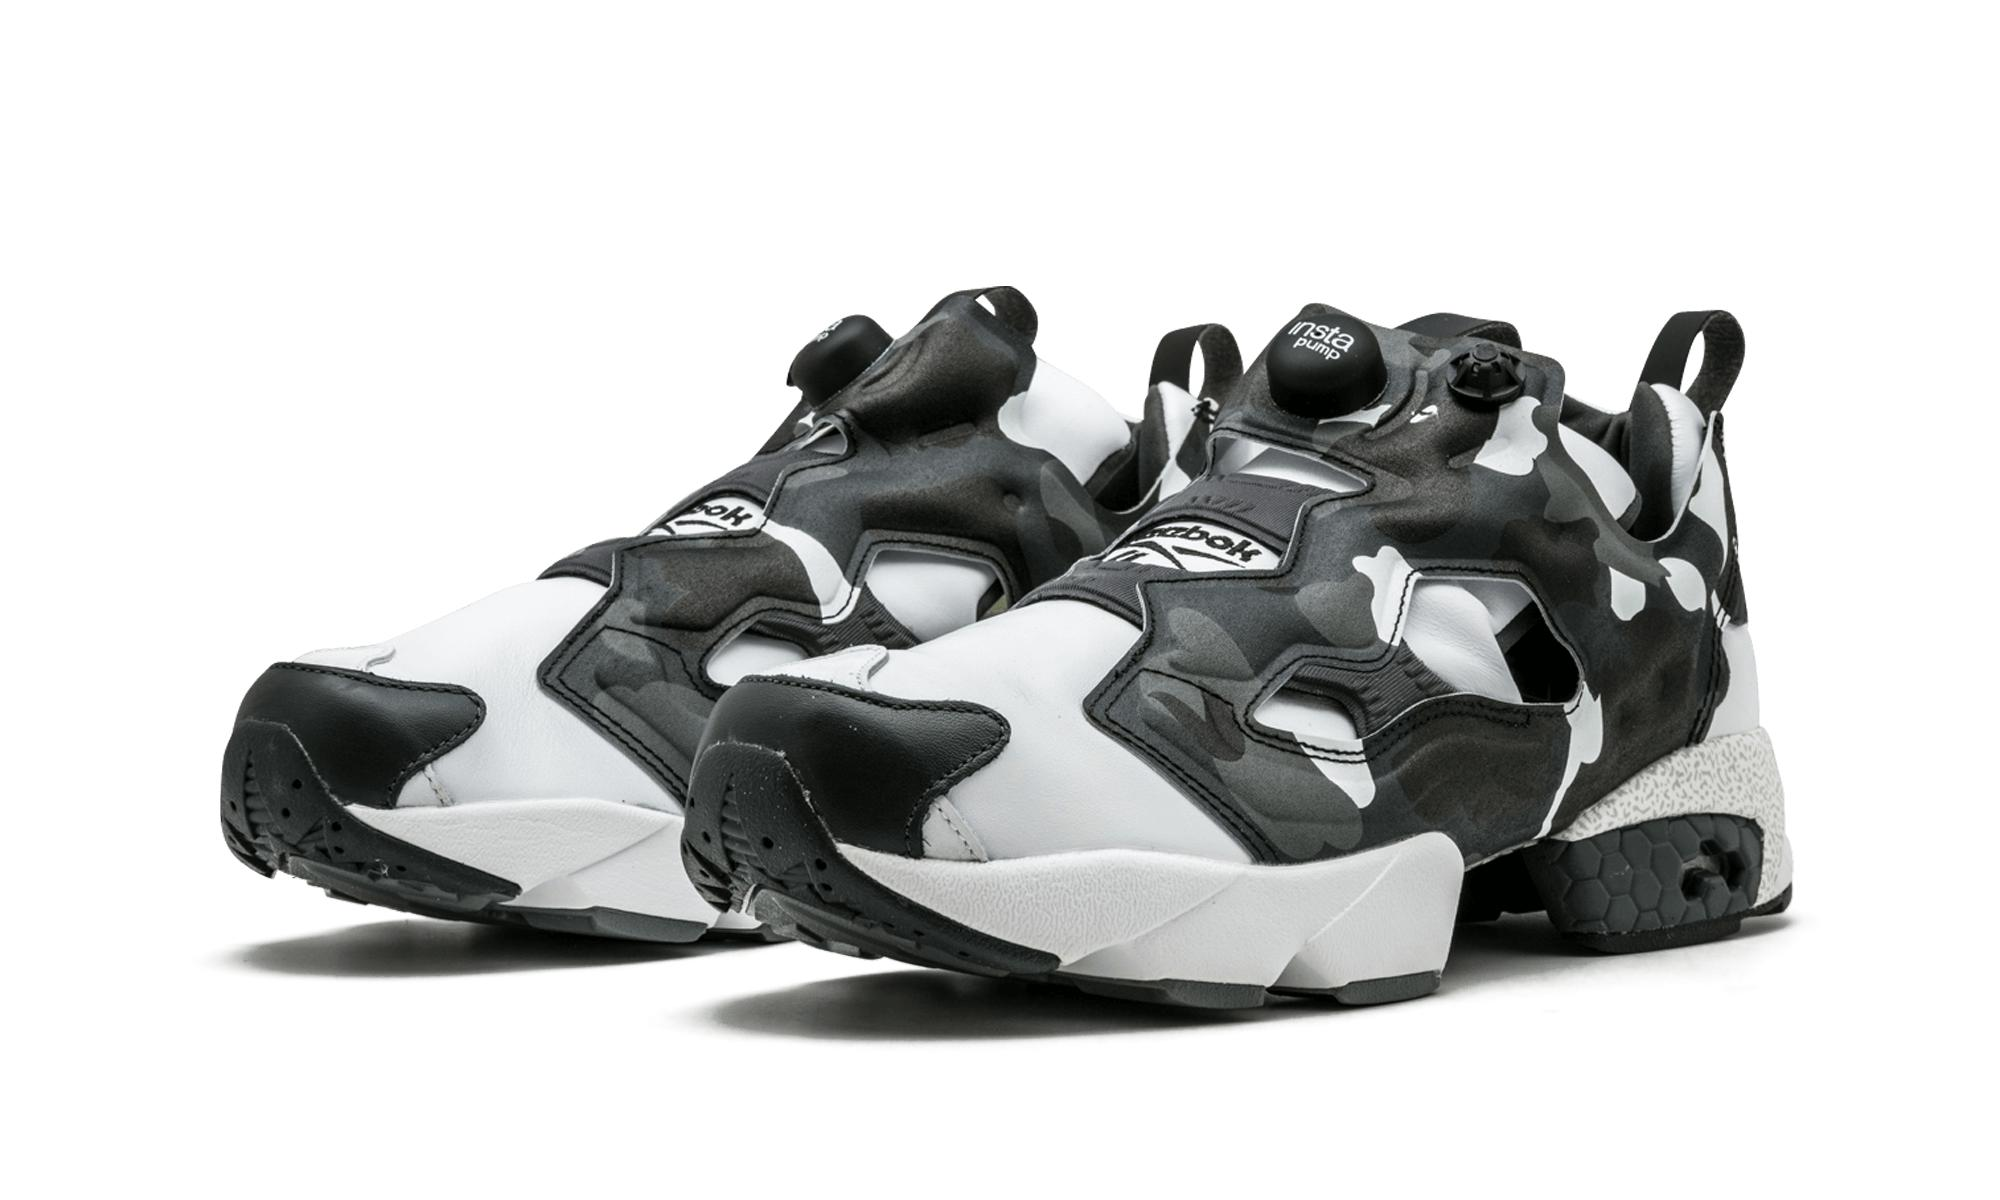 competitive price a0a12 6c4ed Reebok - White Instapump Fury Mita Bape - Size 9 for Men - Lyst. View  fullscreen